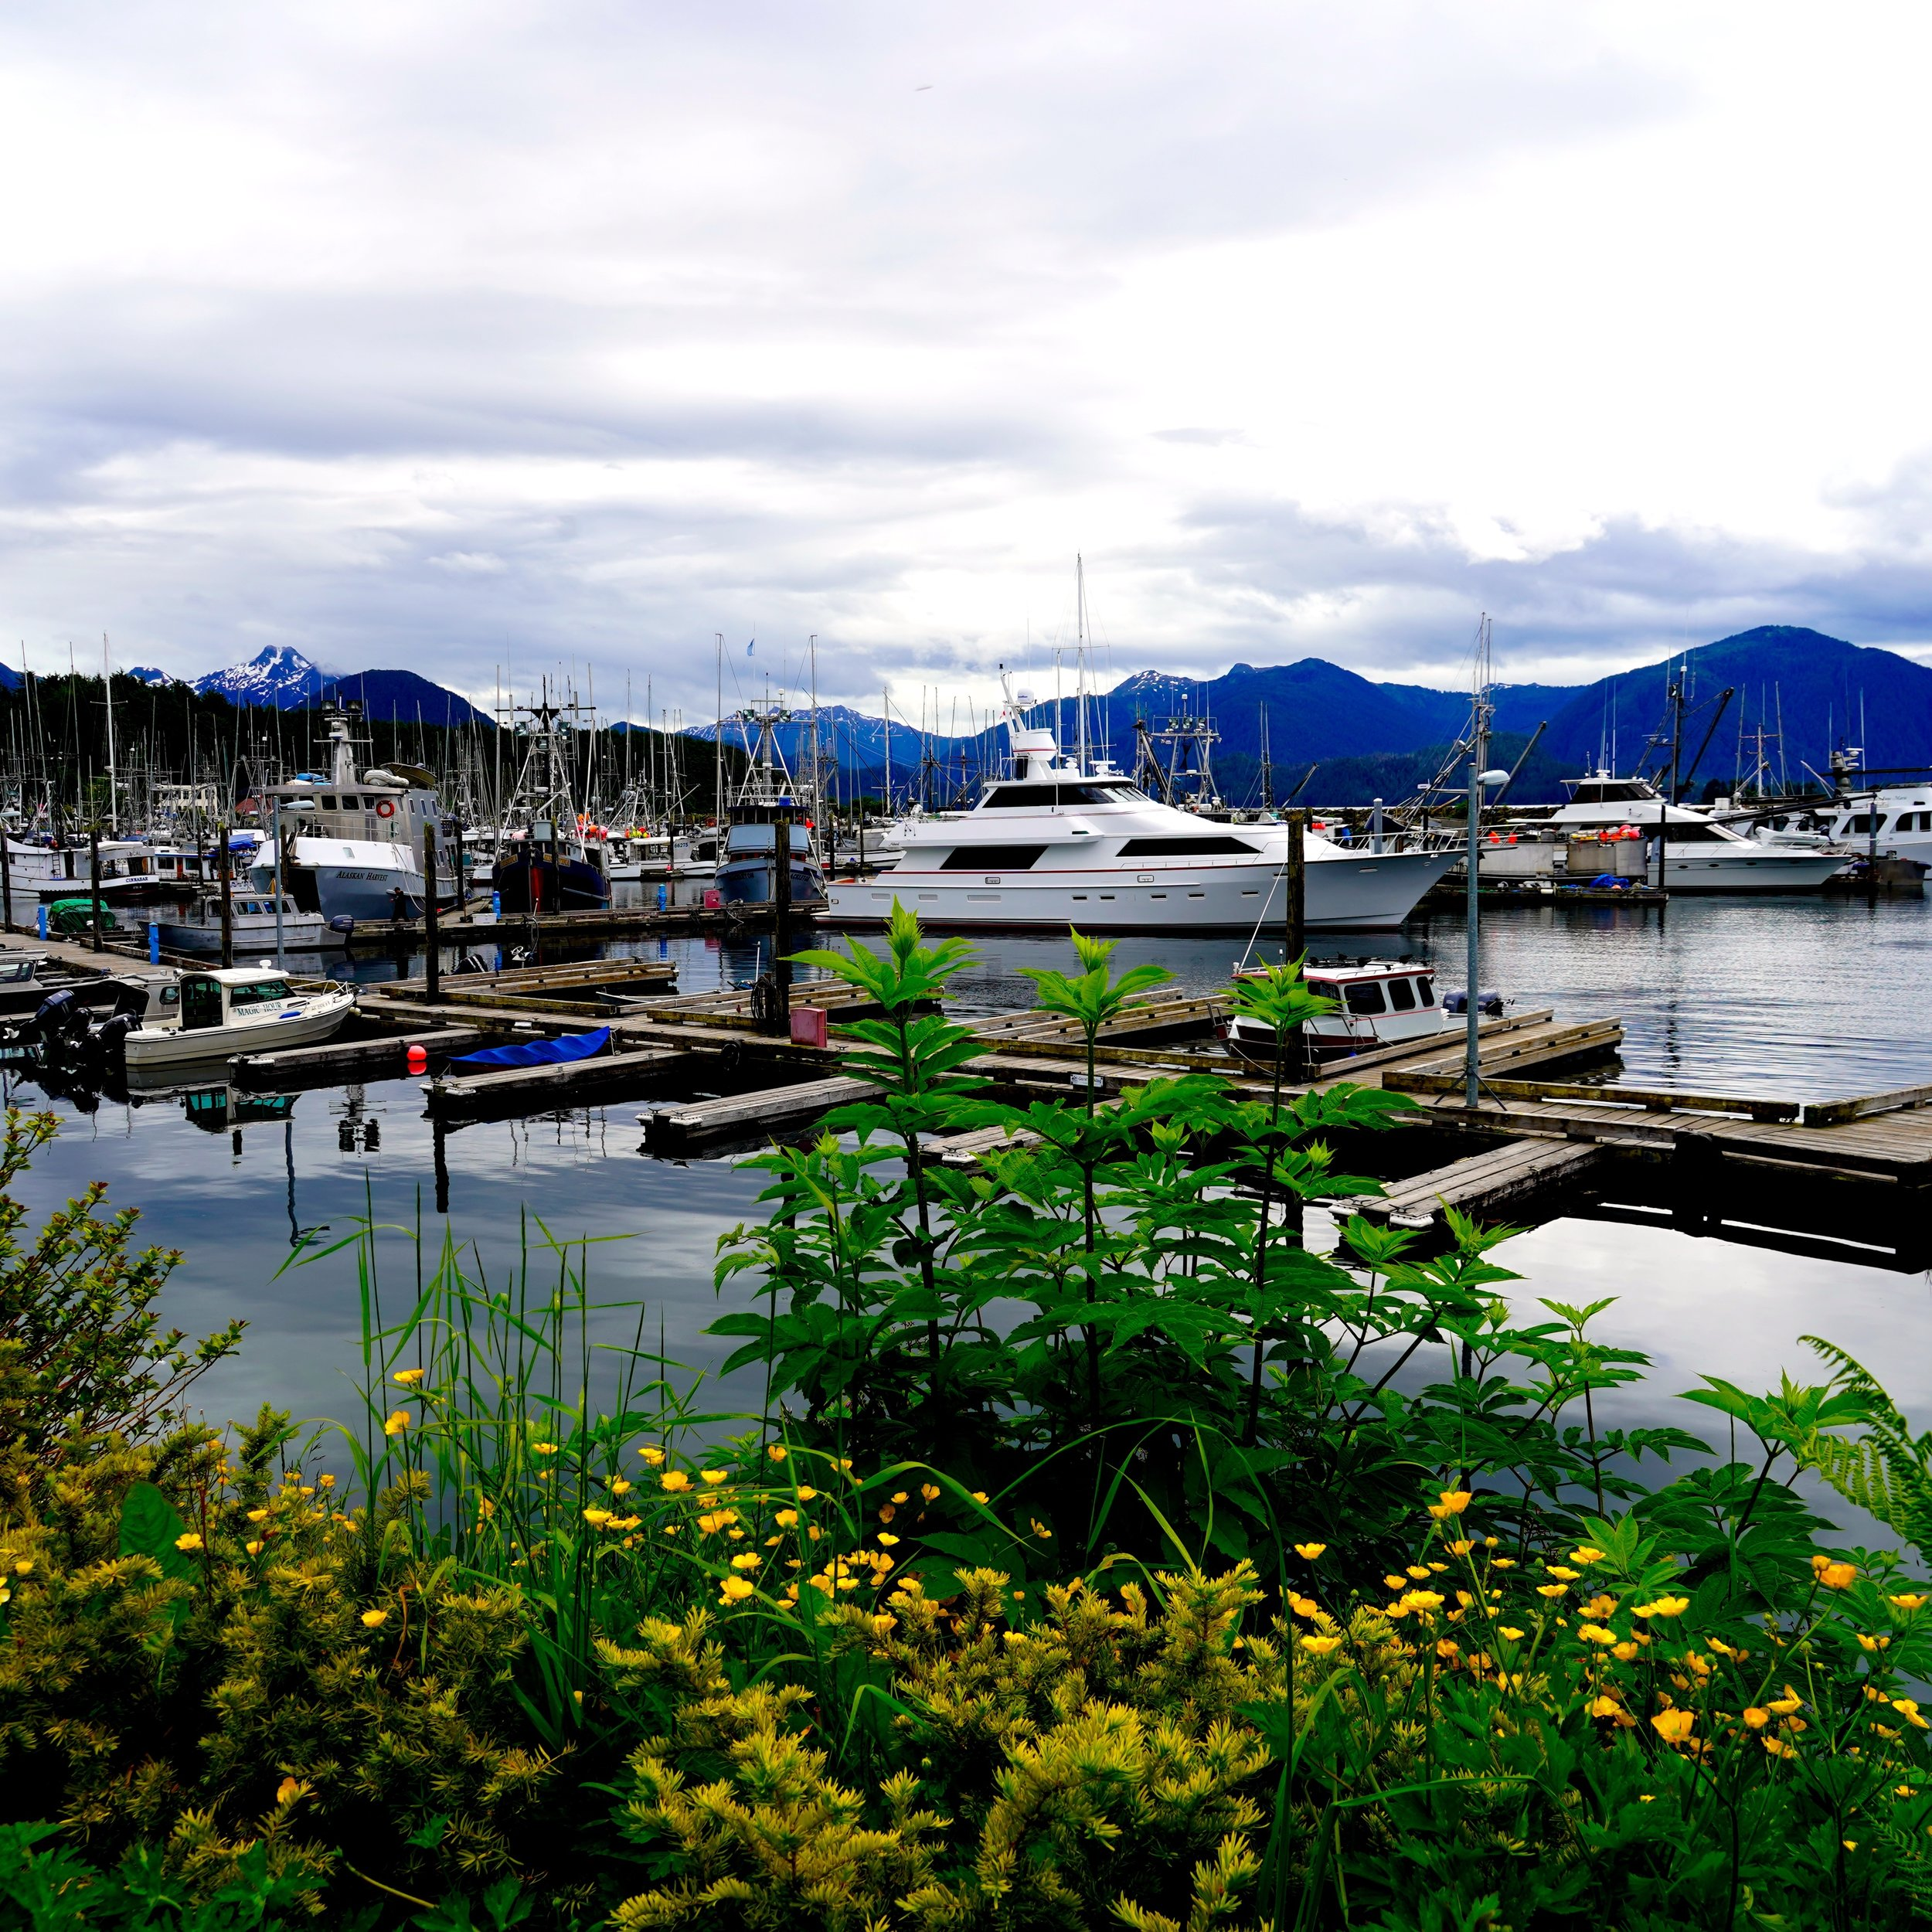 6-24-18 Sitka marina mountains.JPG